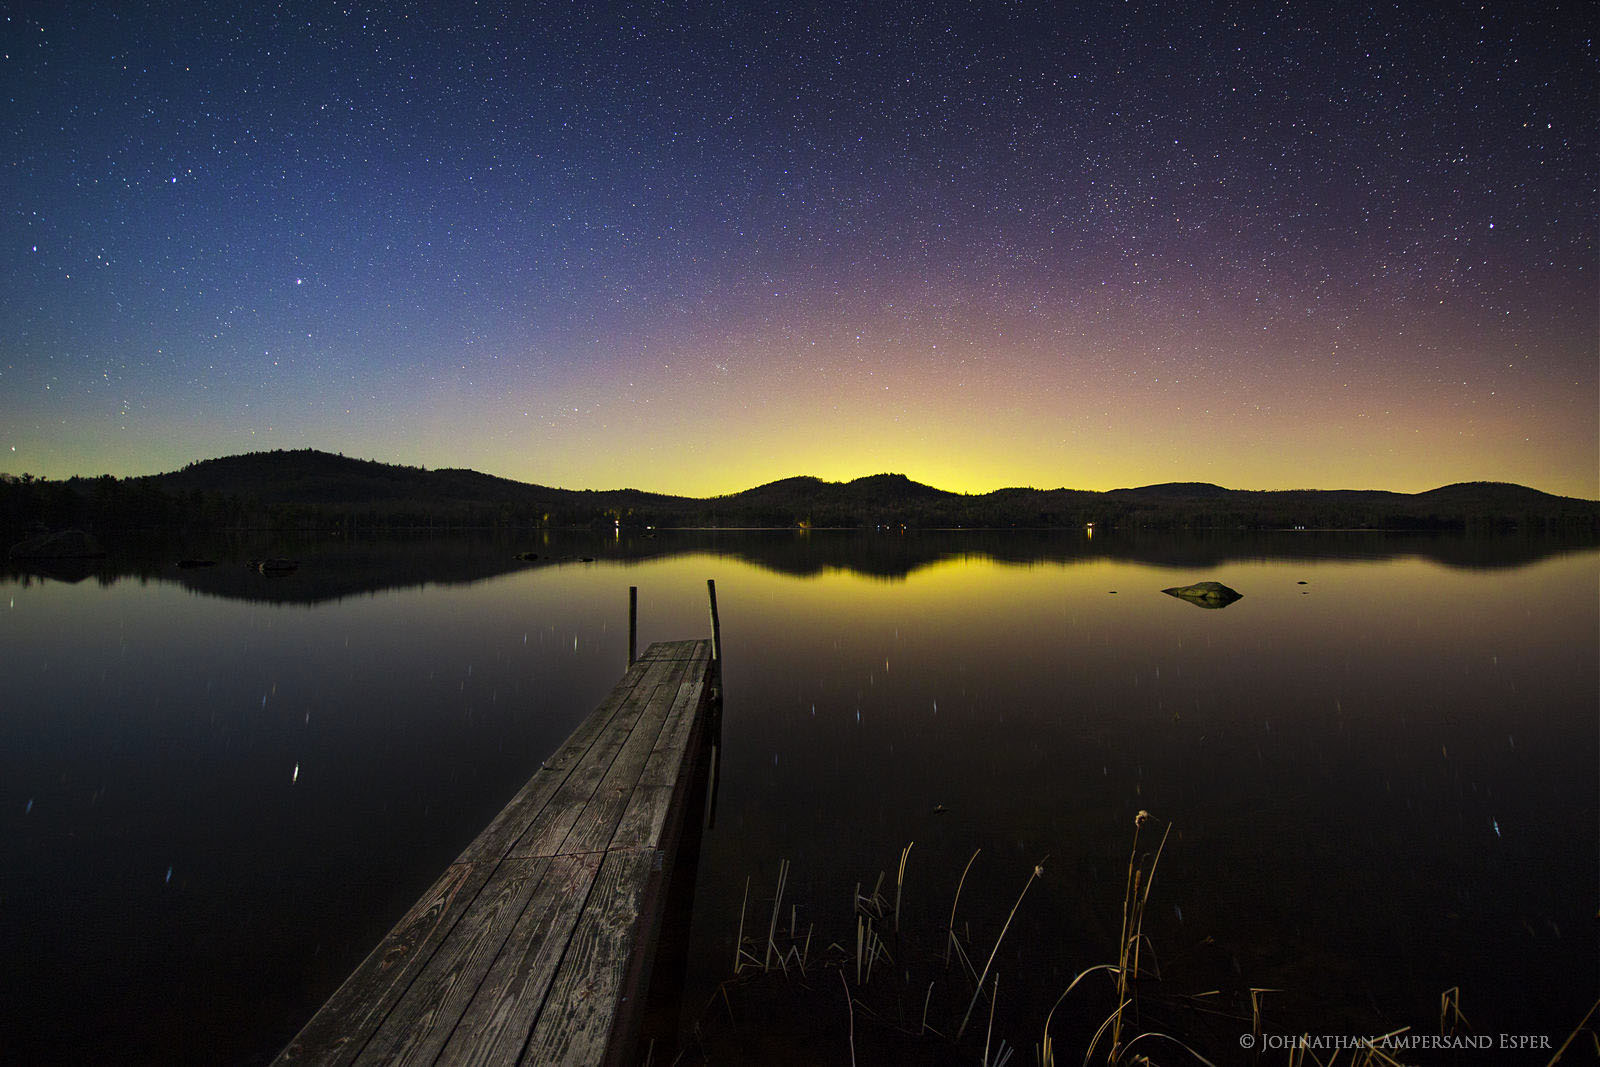 Fern Lake,aurora borealis,dock,wooden dock,night stars,night sky,April,2016,Fern Lake dock aurora borealis